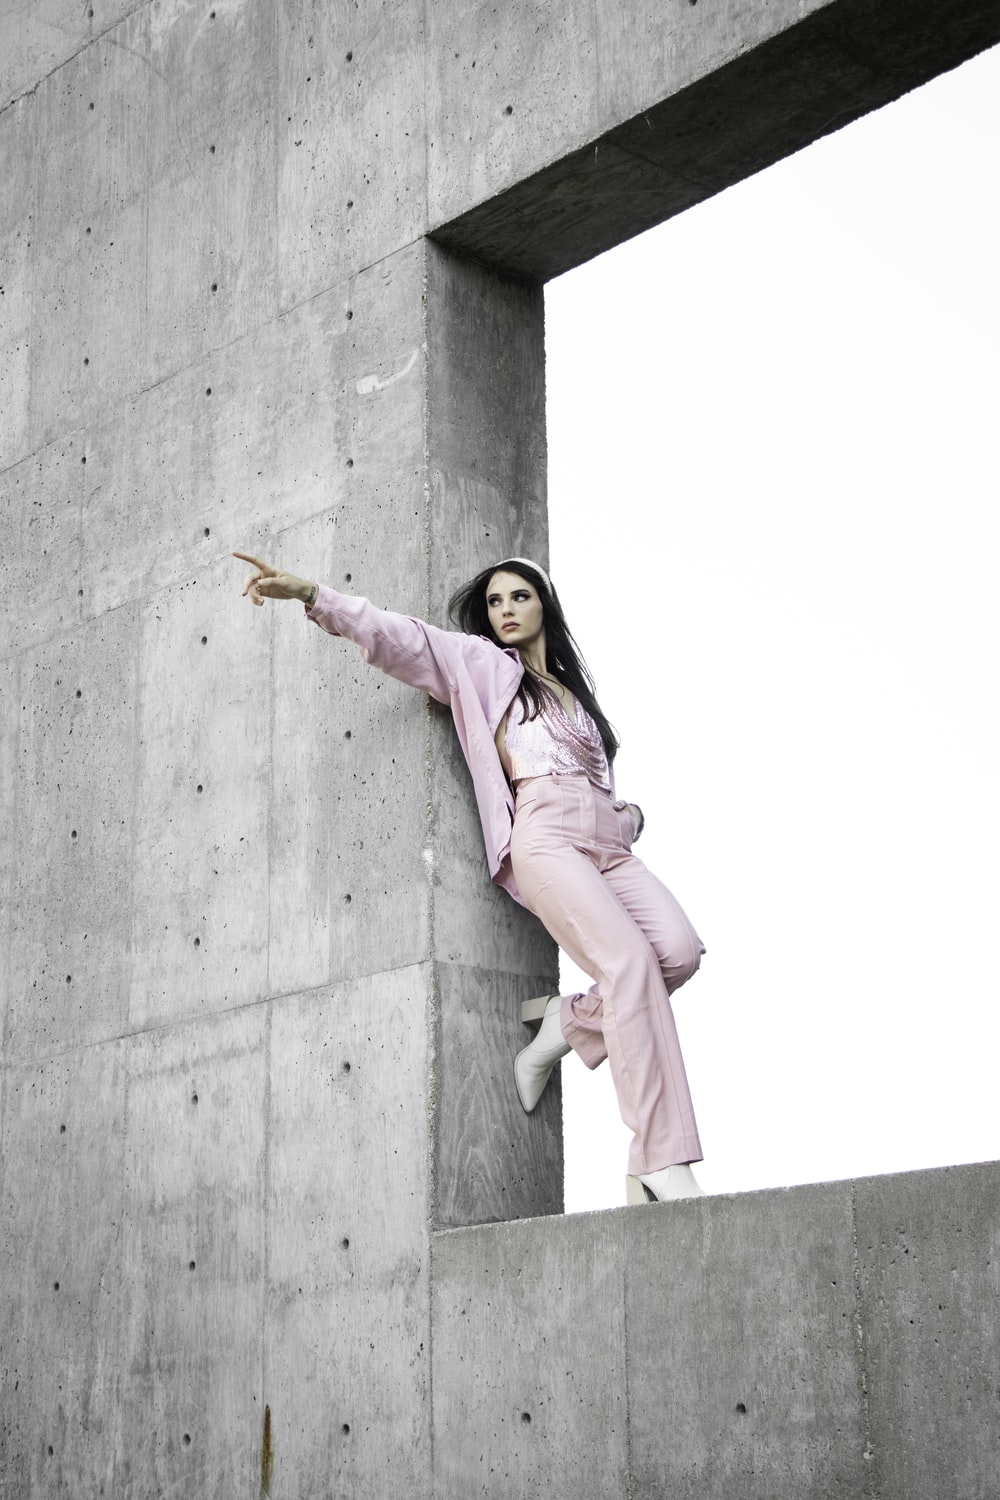 woman in pink coat standing on gray concrete wall